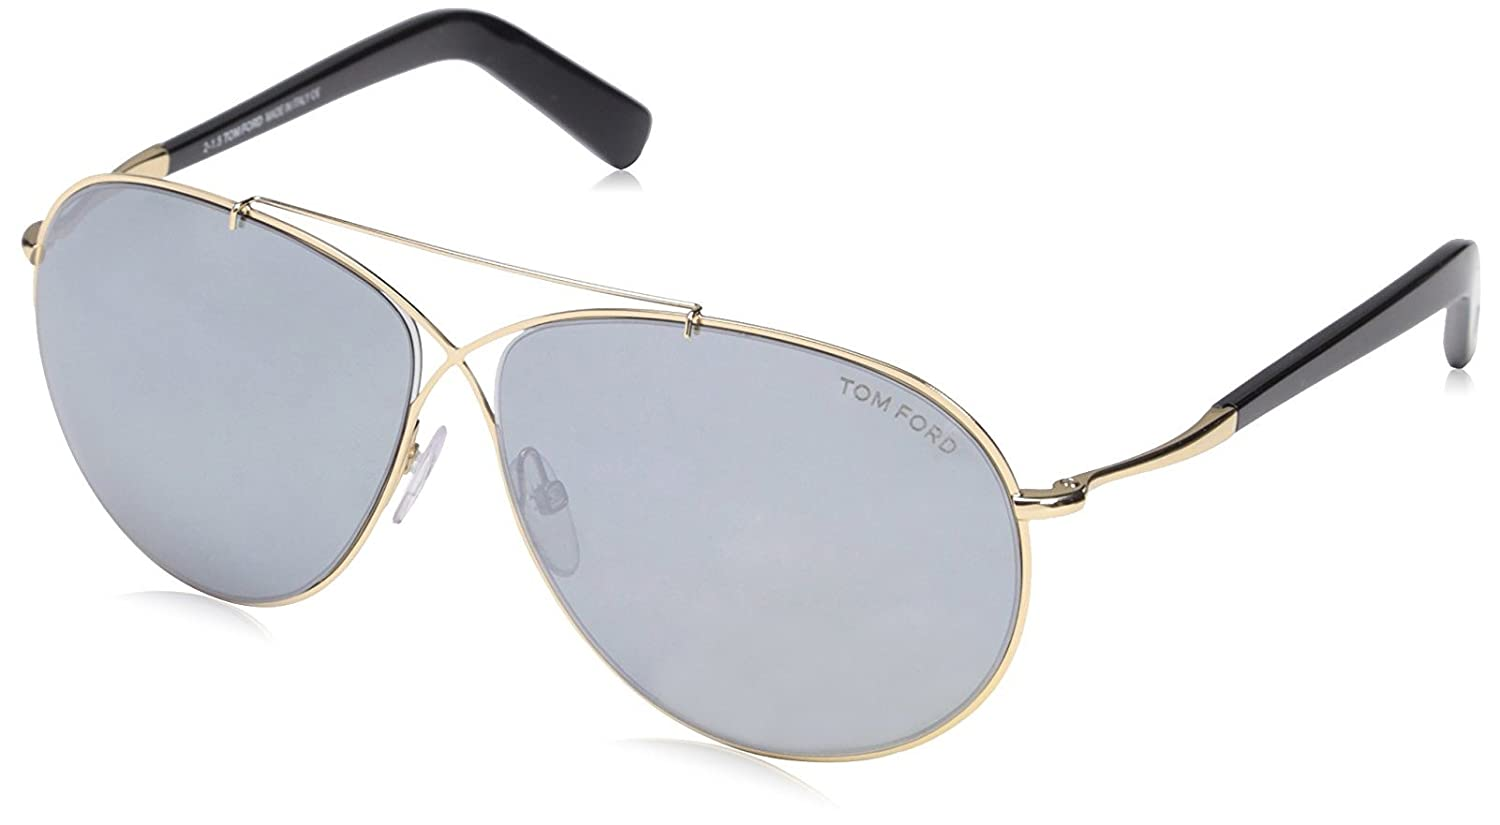 a36f10d818a Amazon.com  Tom Ford Women s TF374 Sunglasses